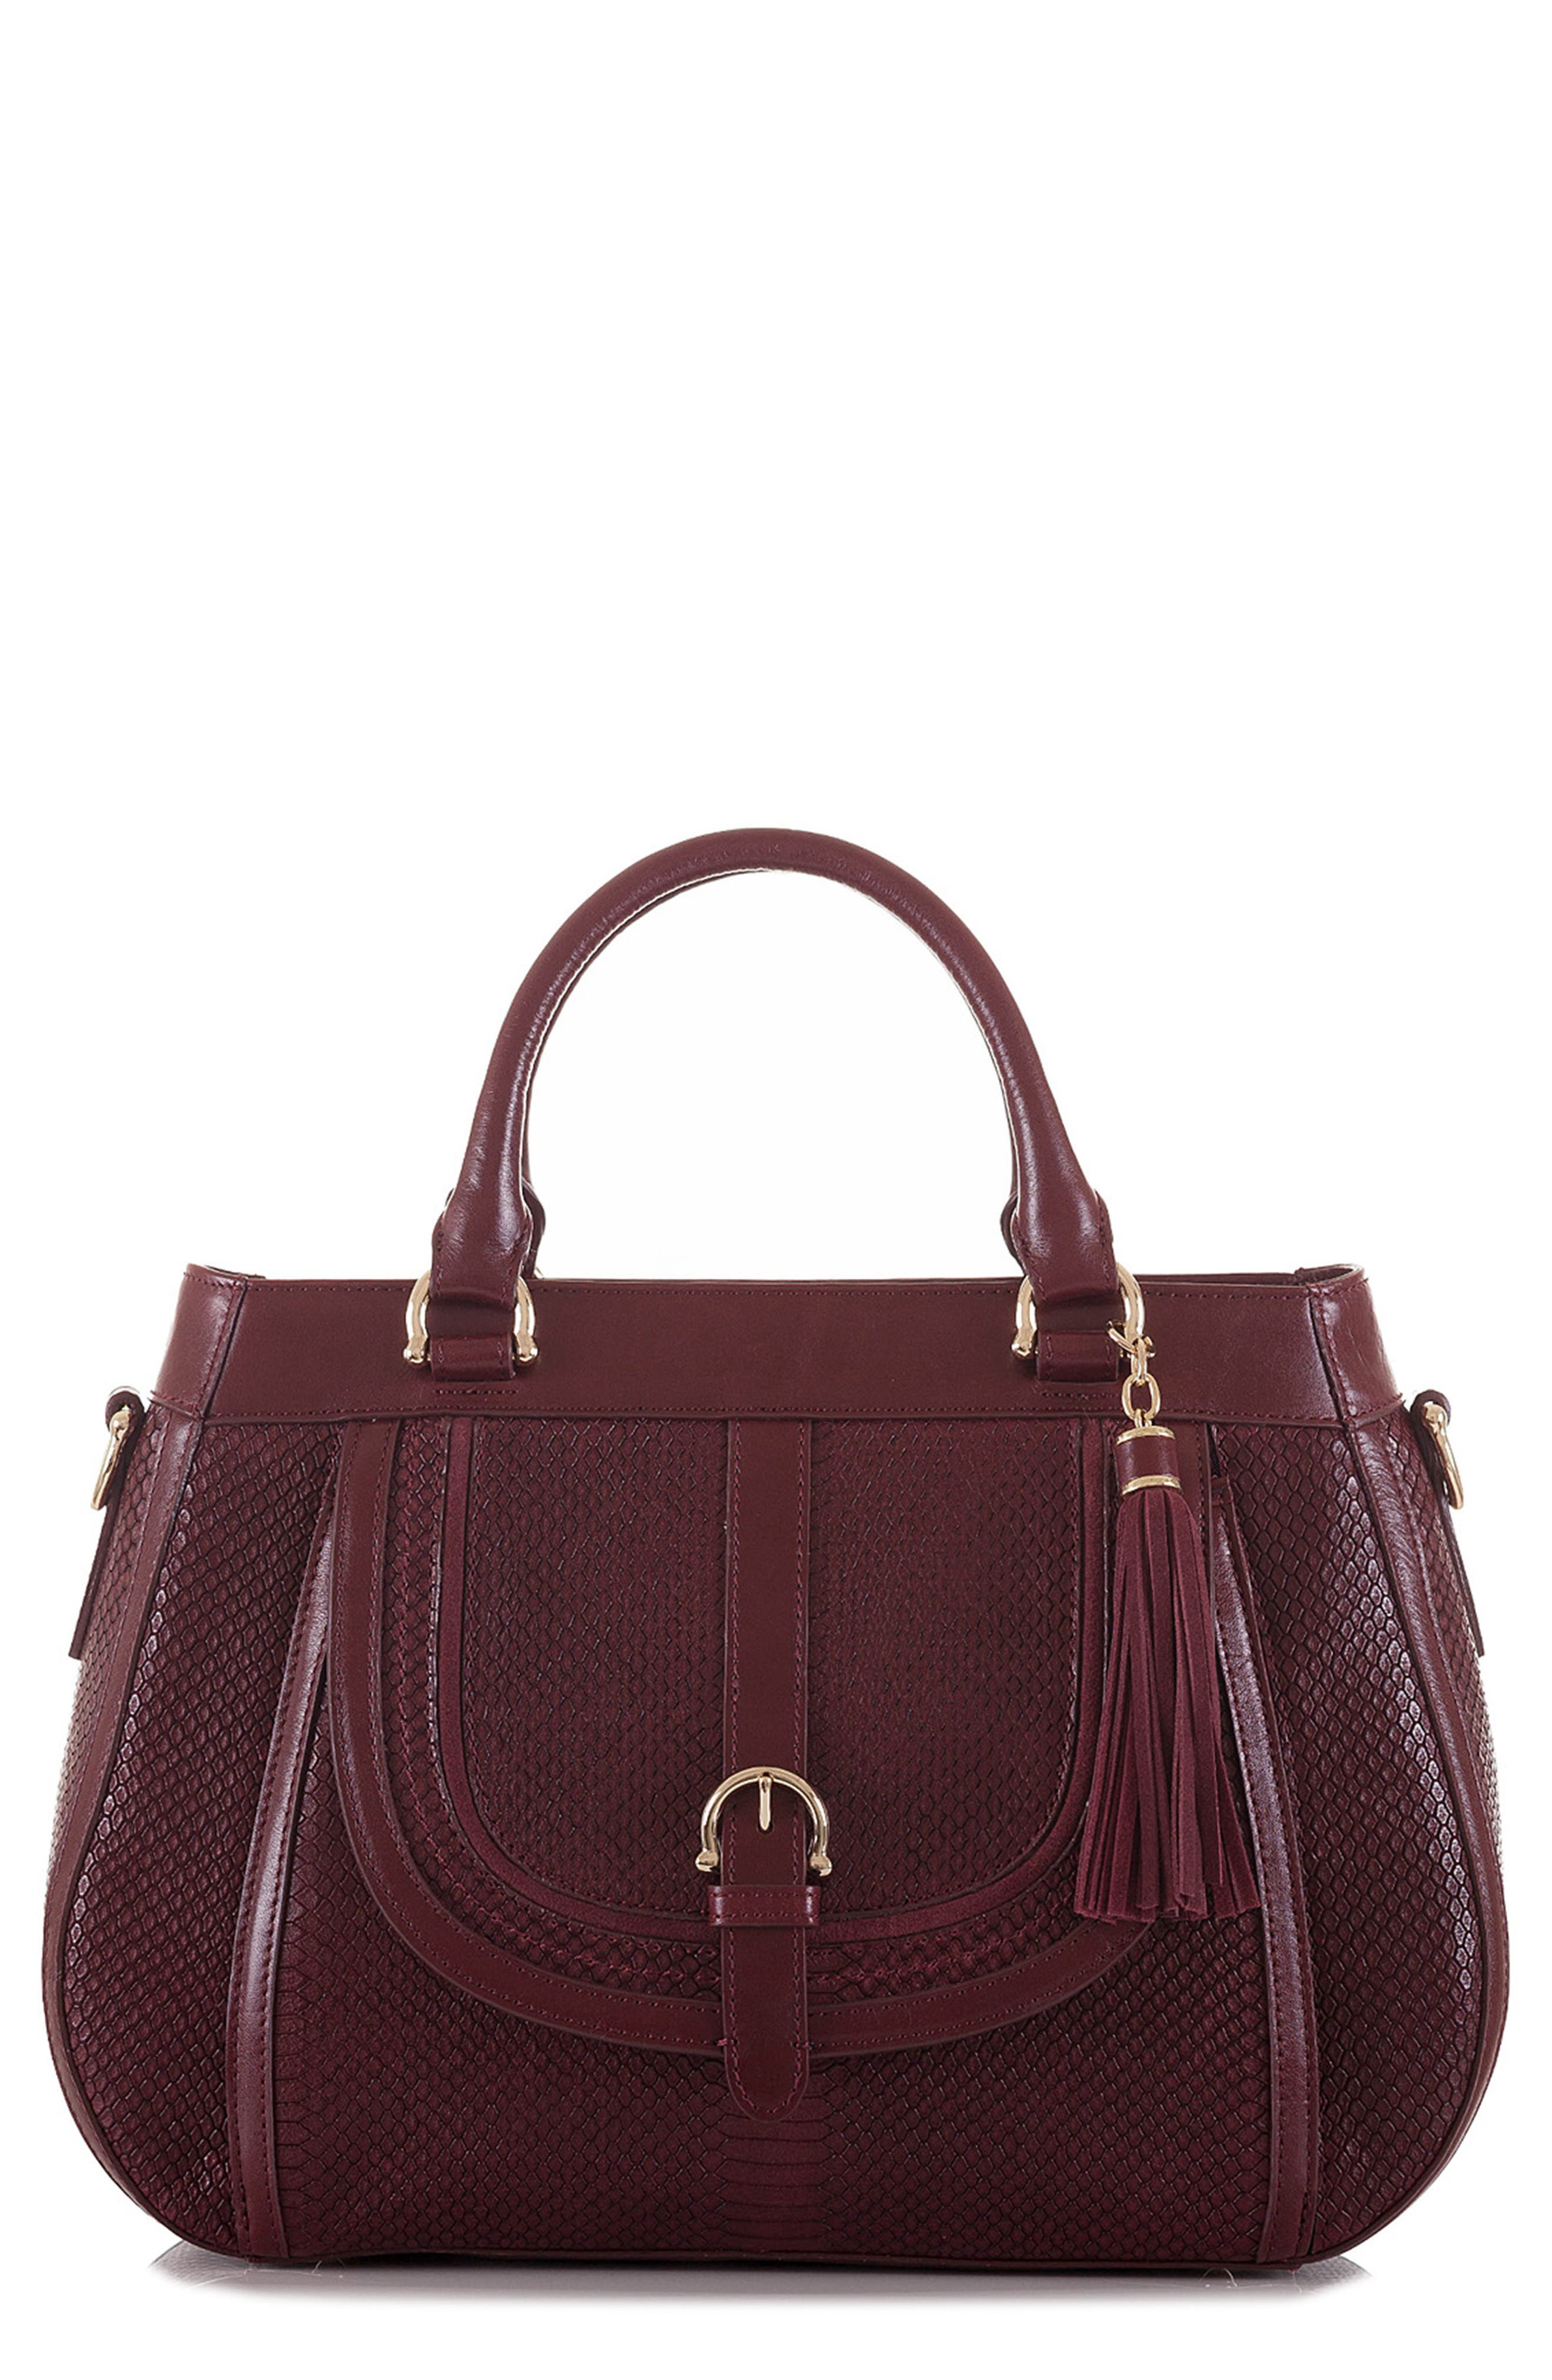 Raelynn Embossed Leather Satchel,                             Main thumbnail 1, color,                             932